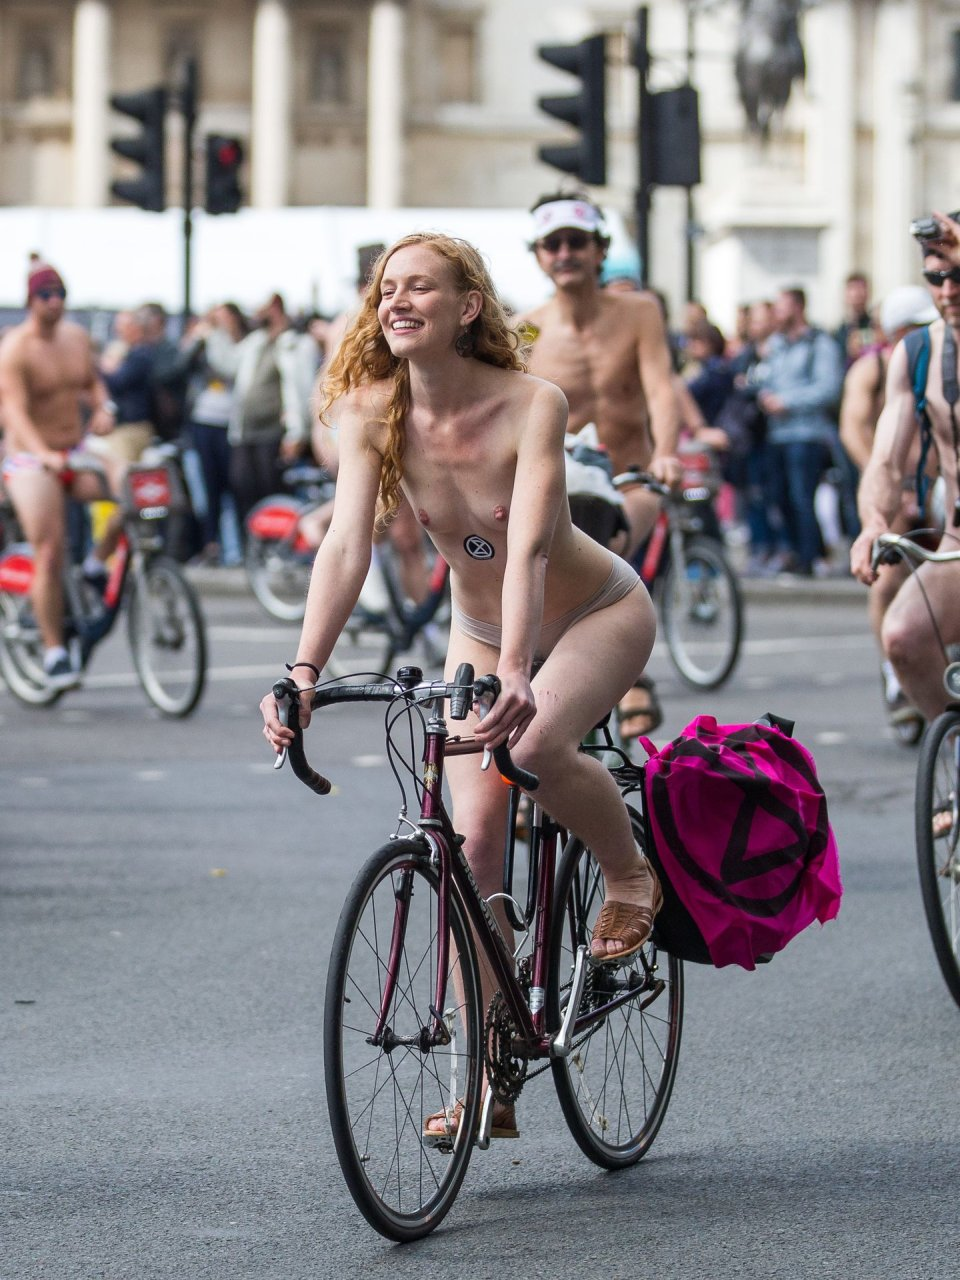 naked girls on bikes riding